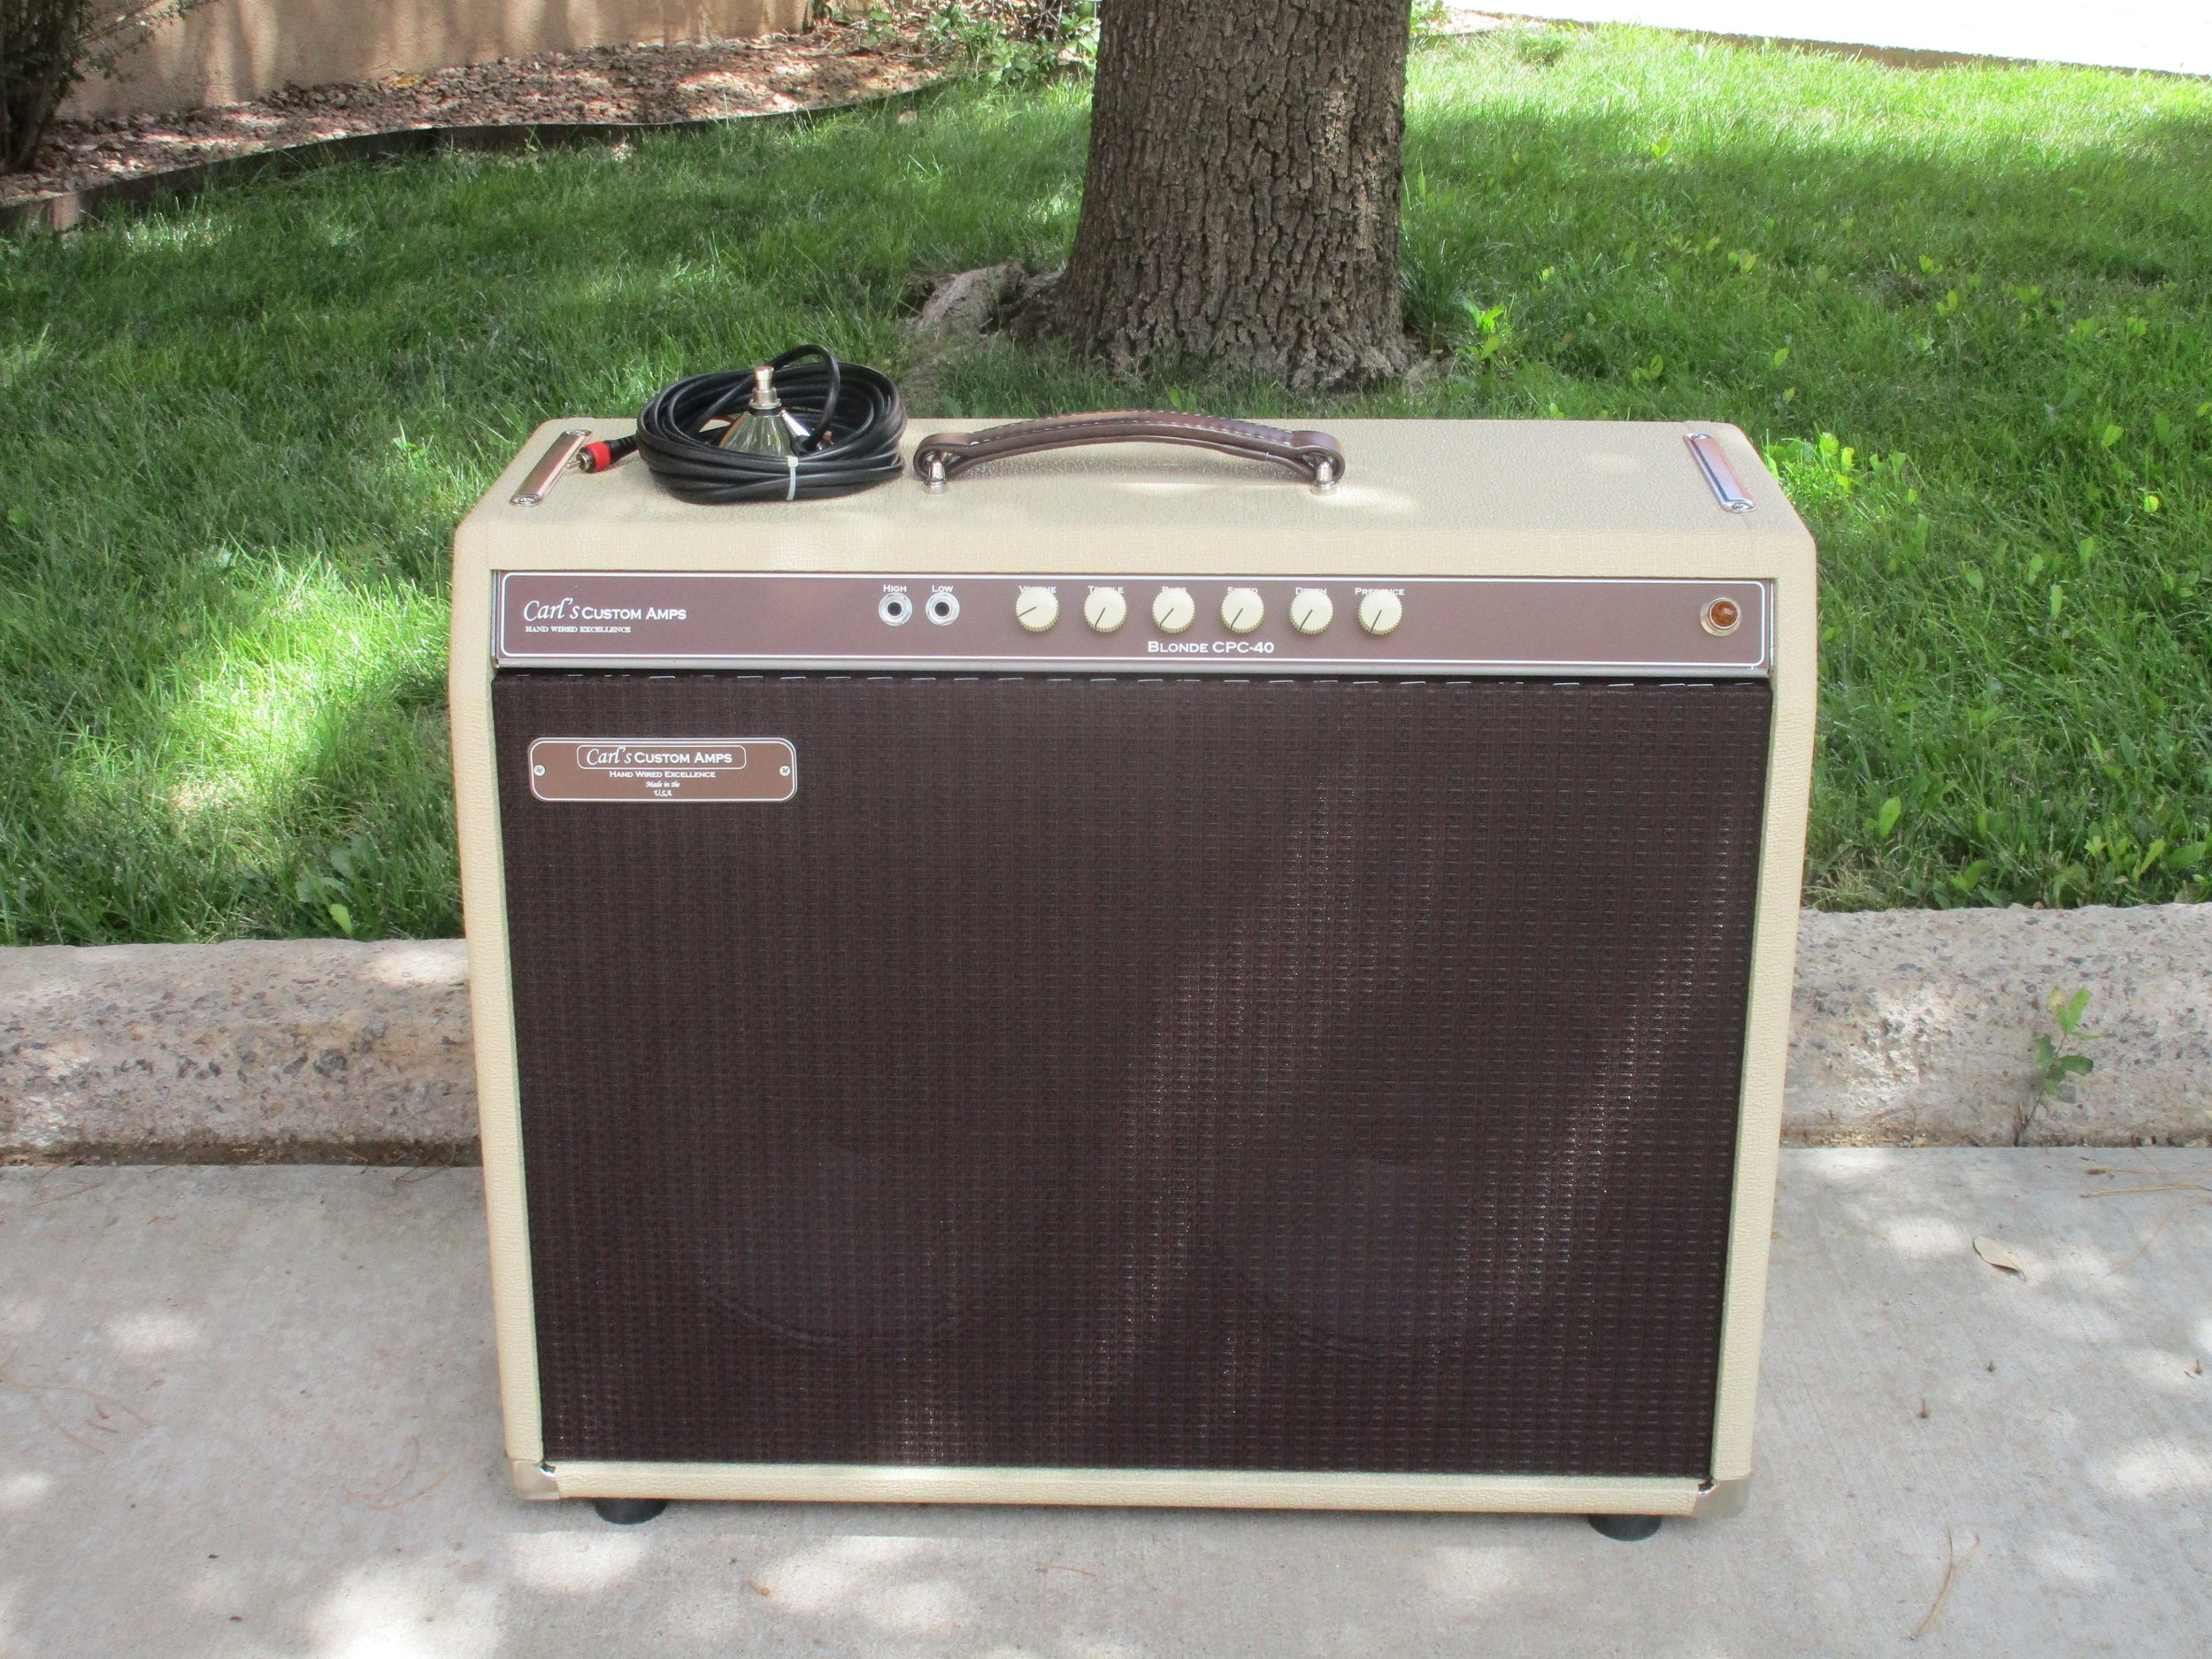 Custom Blonde CPC-40 Amp! 2X10 combo!!! The customer wanted a Blonde 40 Watter but with a custom Oxblood Grill and Alinco 10s. Great Vintage Tone and tremolo.